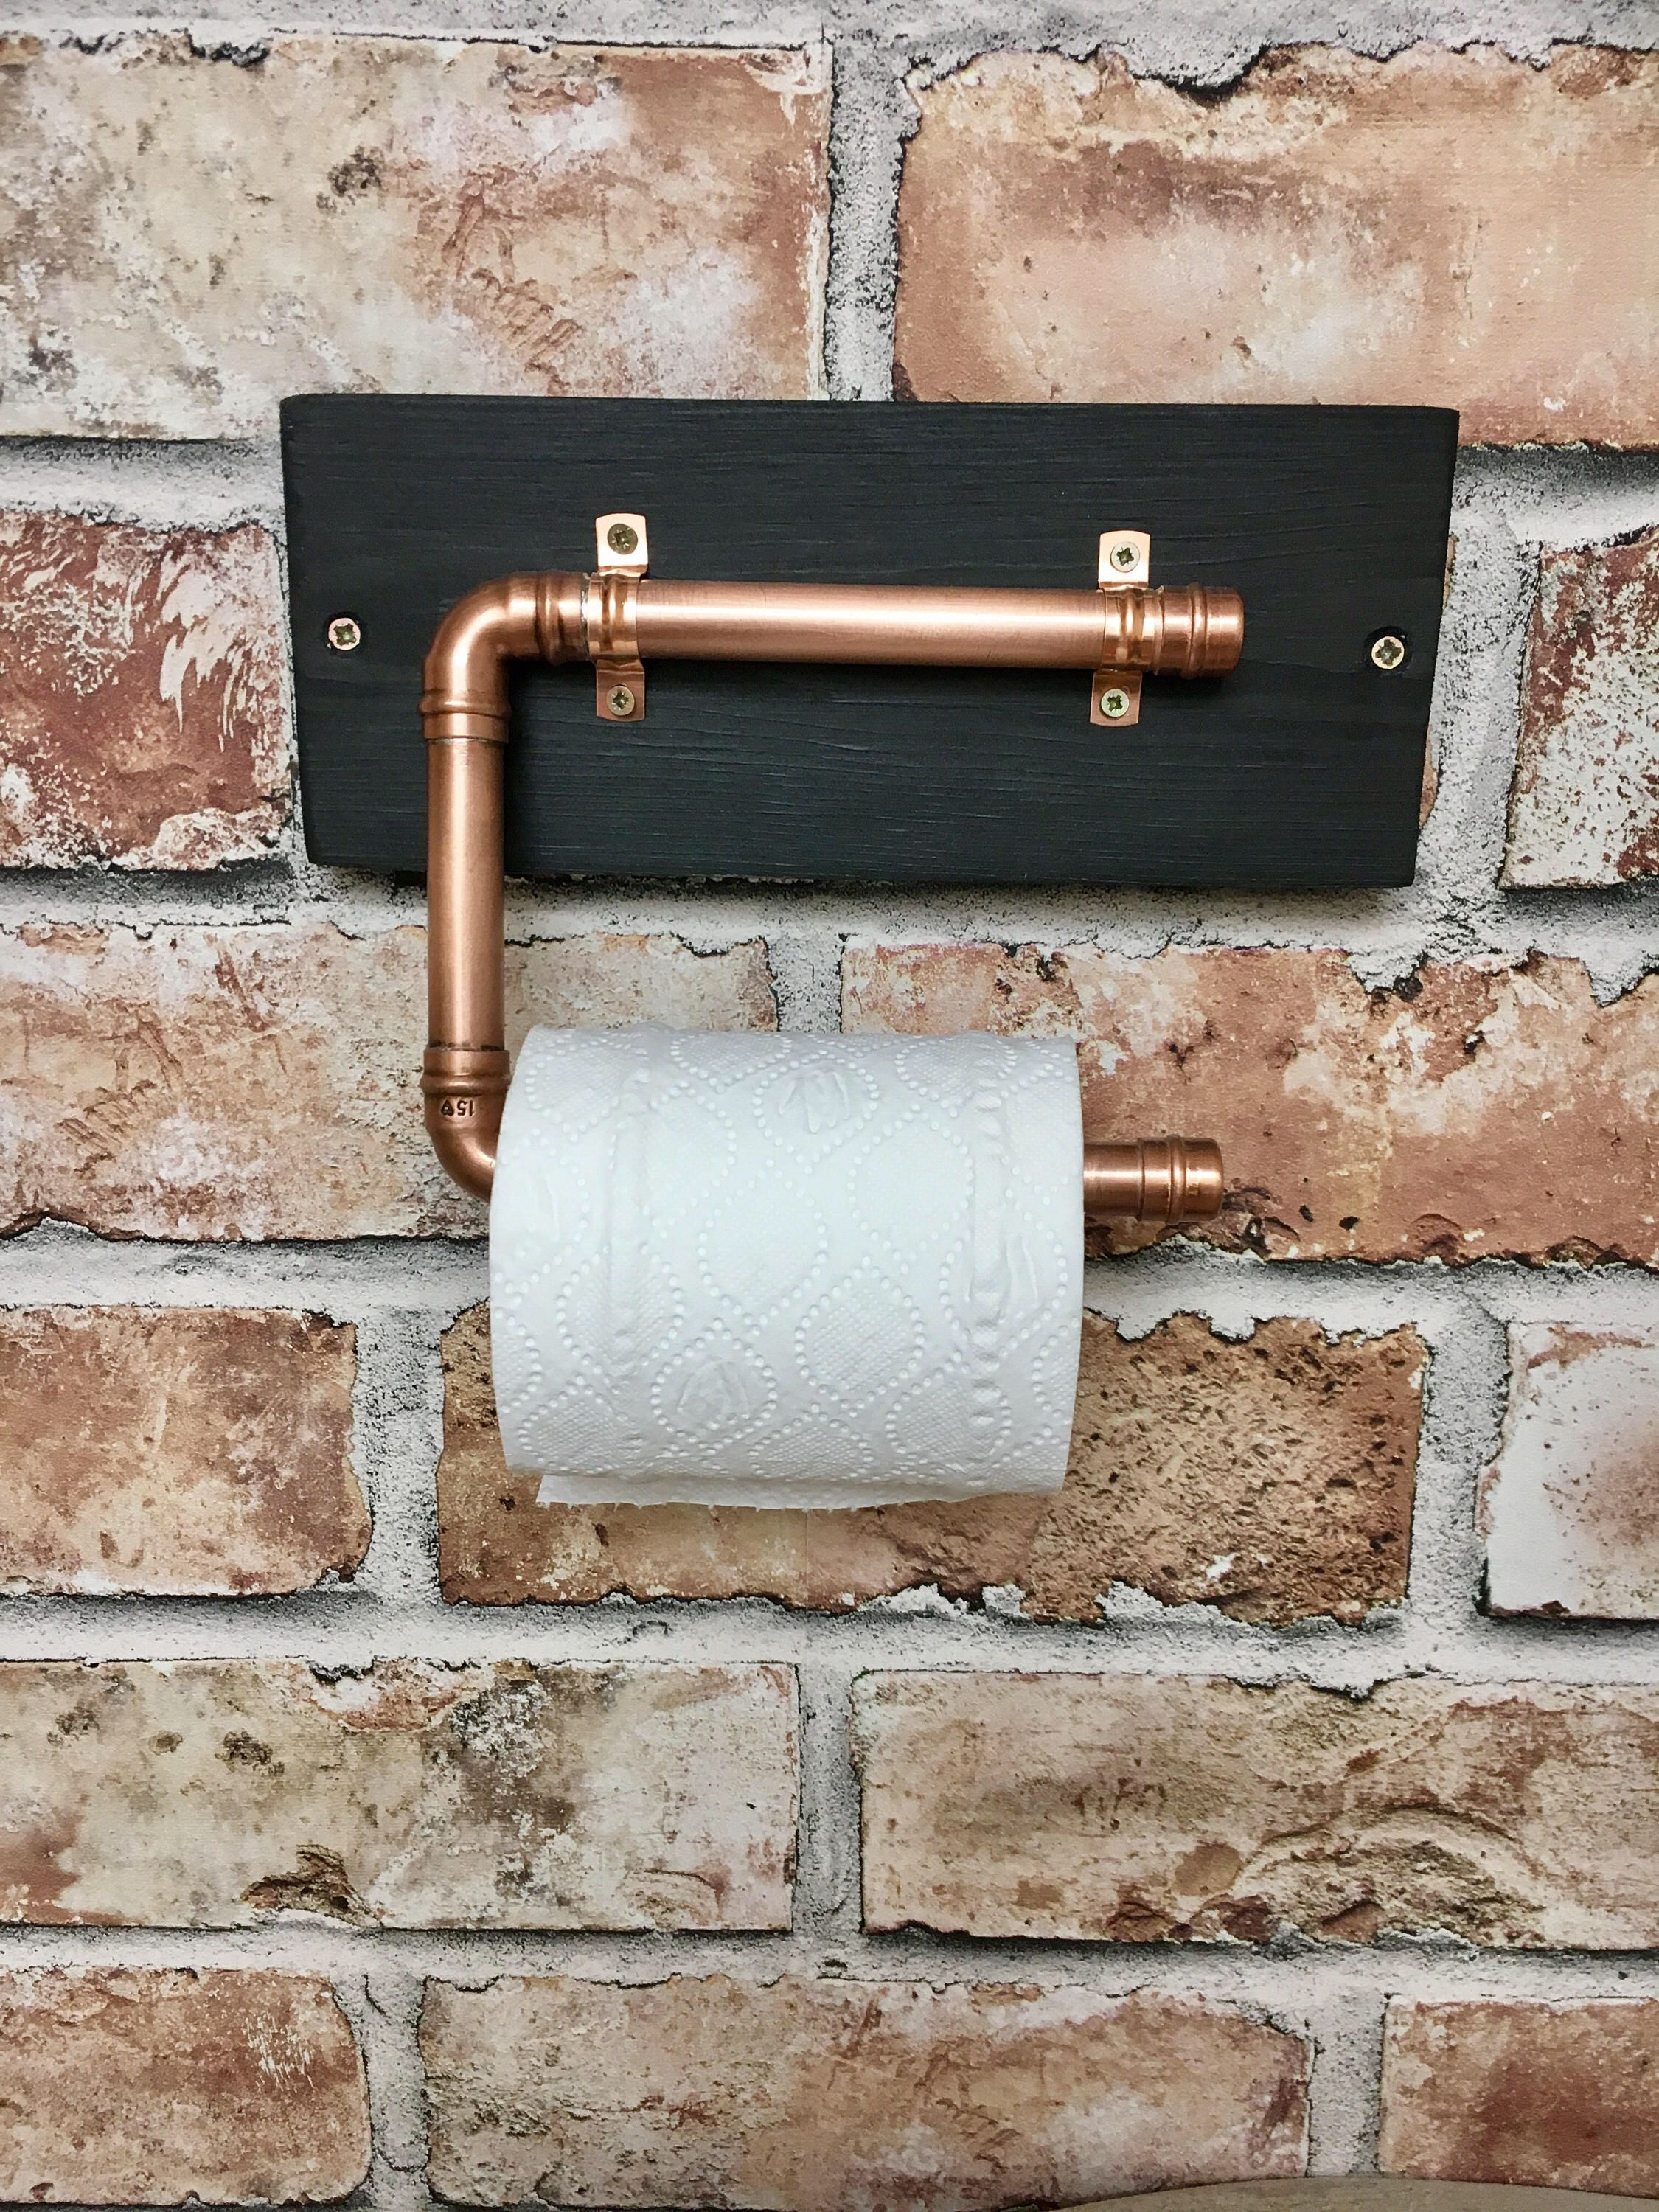 zara sell copper set bathroom they the before best home fashion out now was accessories bits buy to